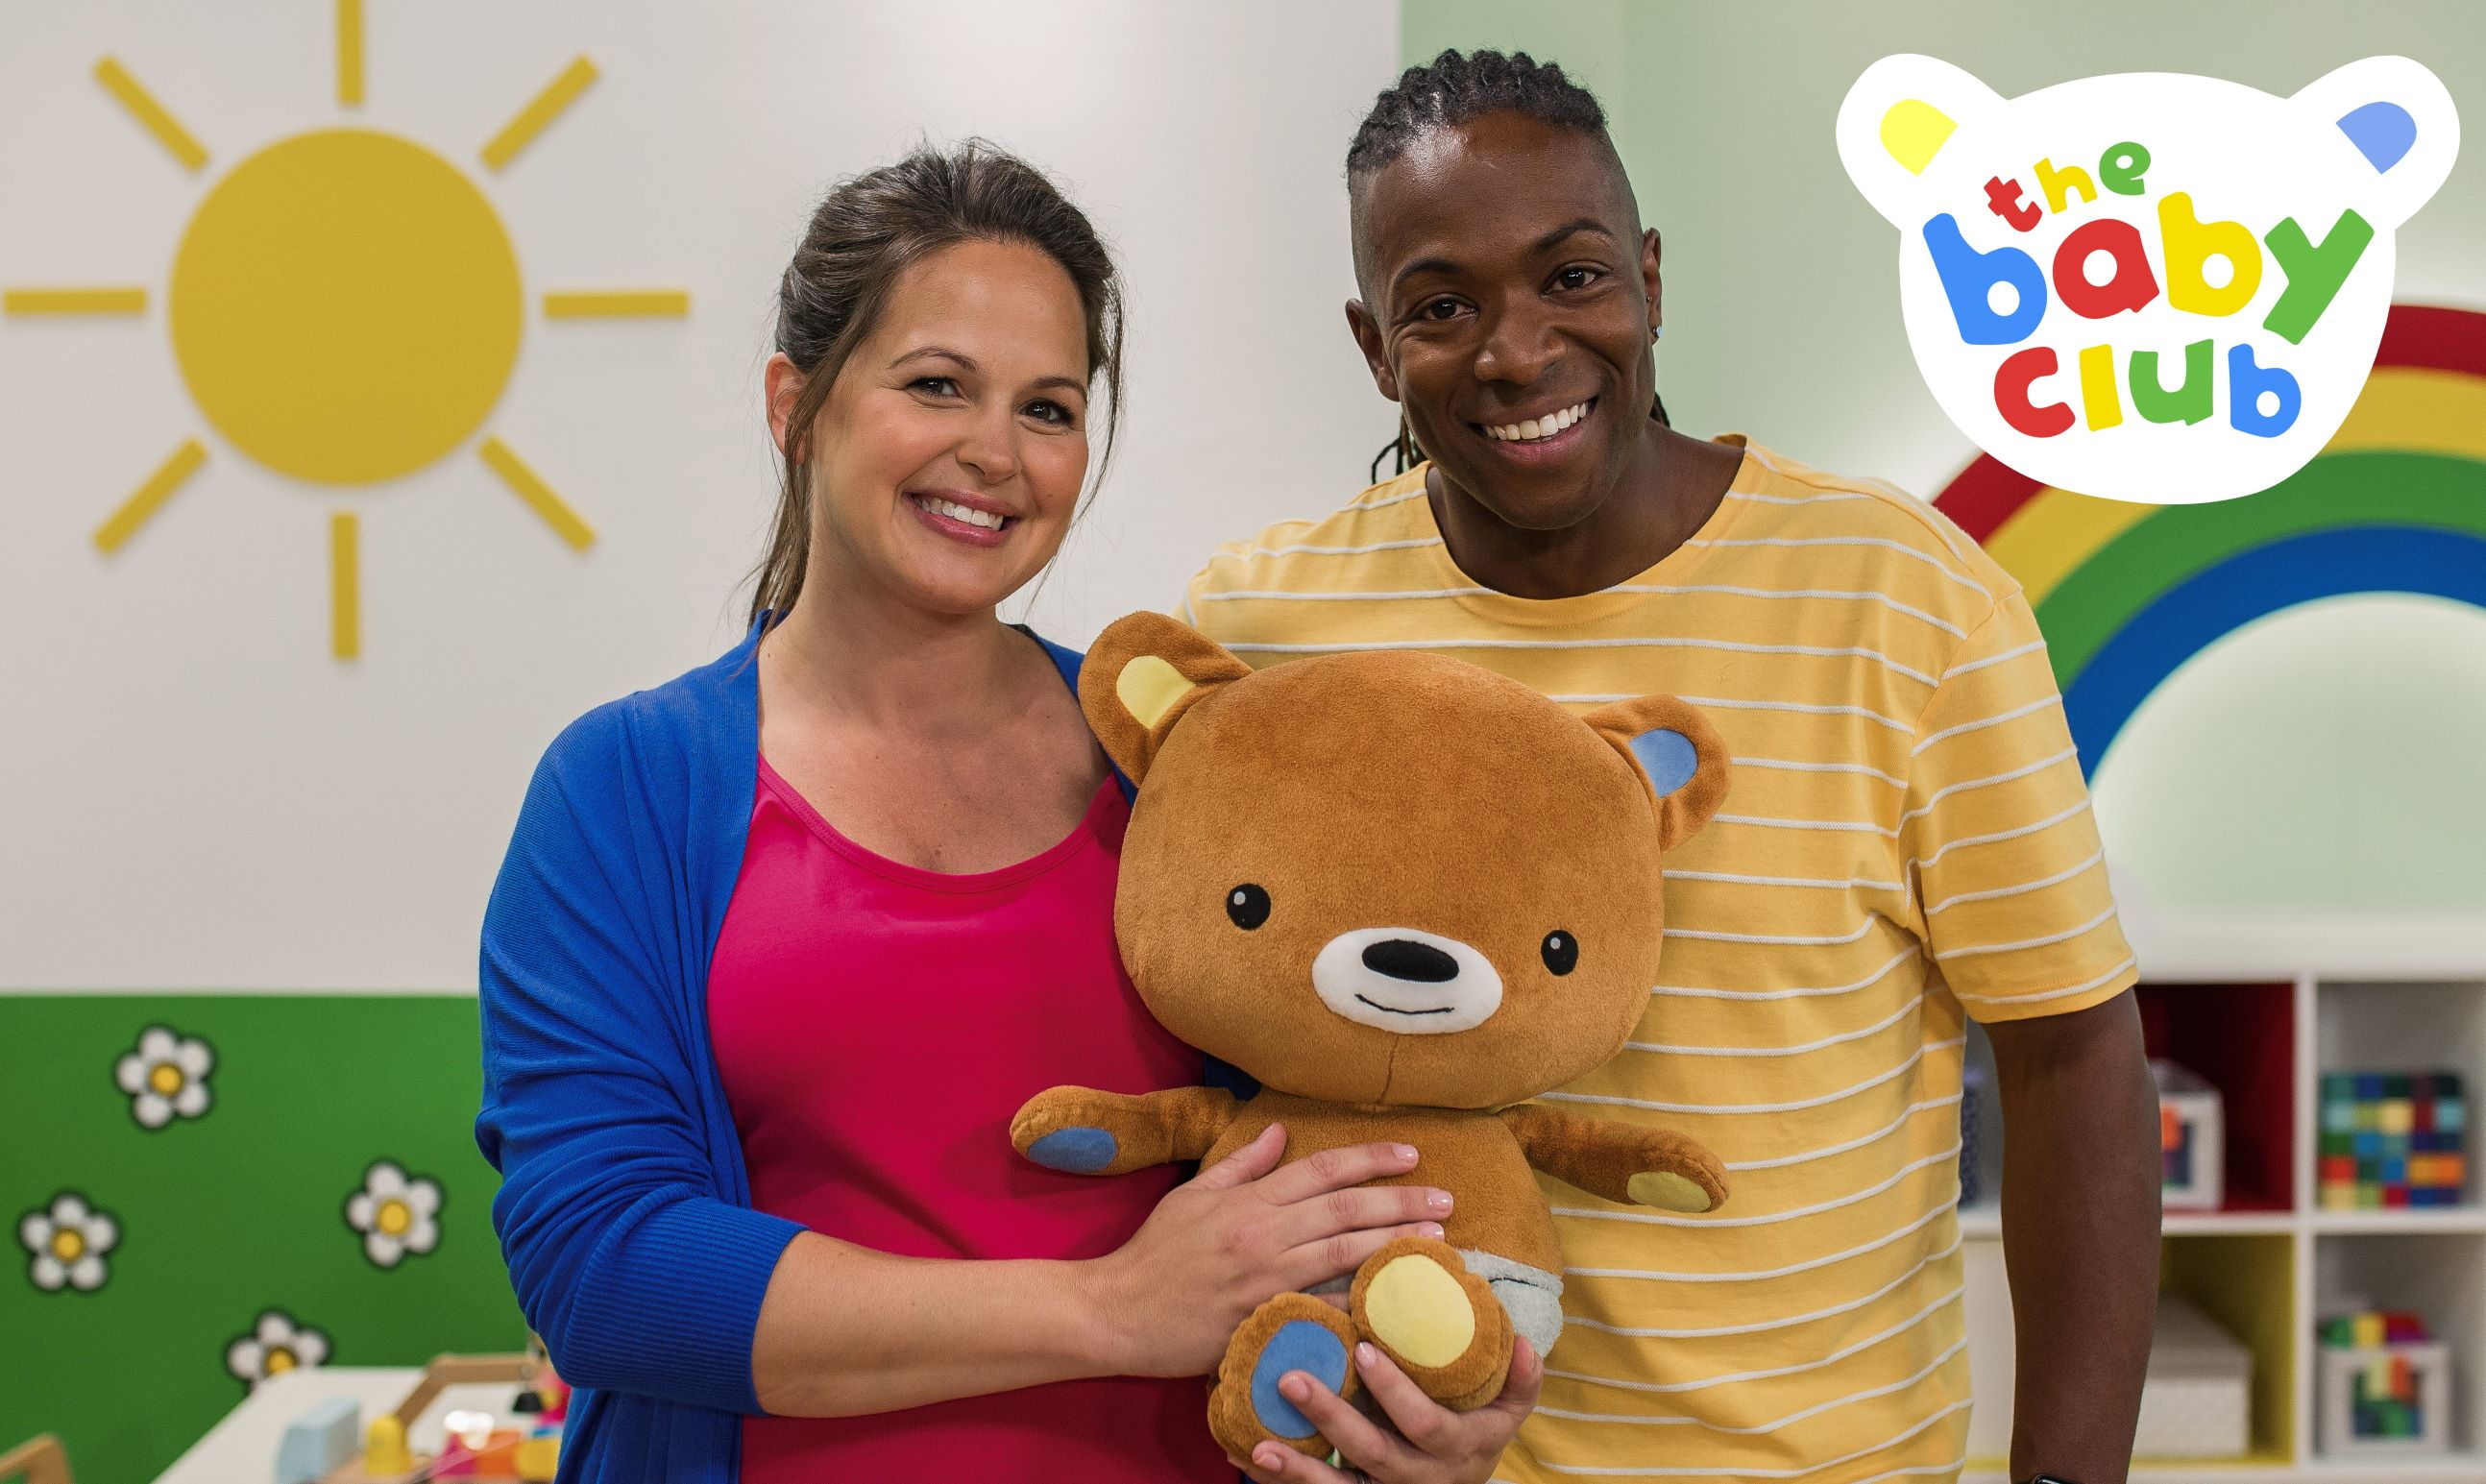 Cbeebies Baby Club - Giovanna and Nigel